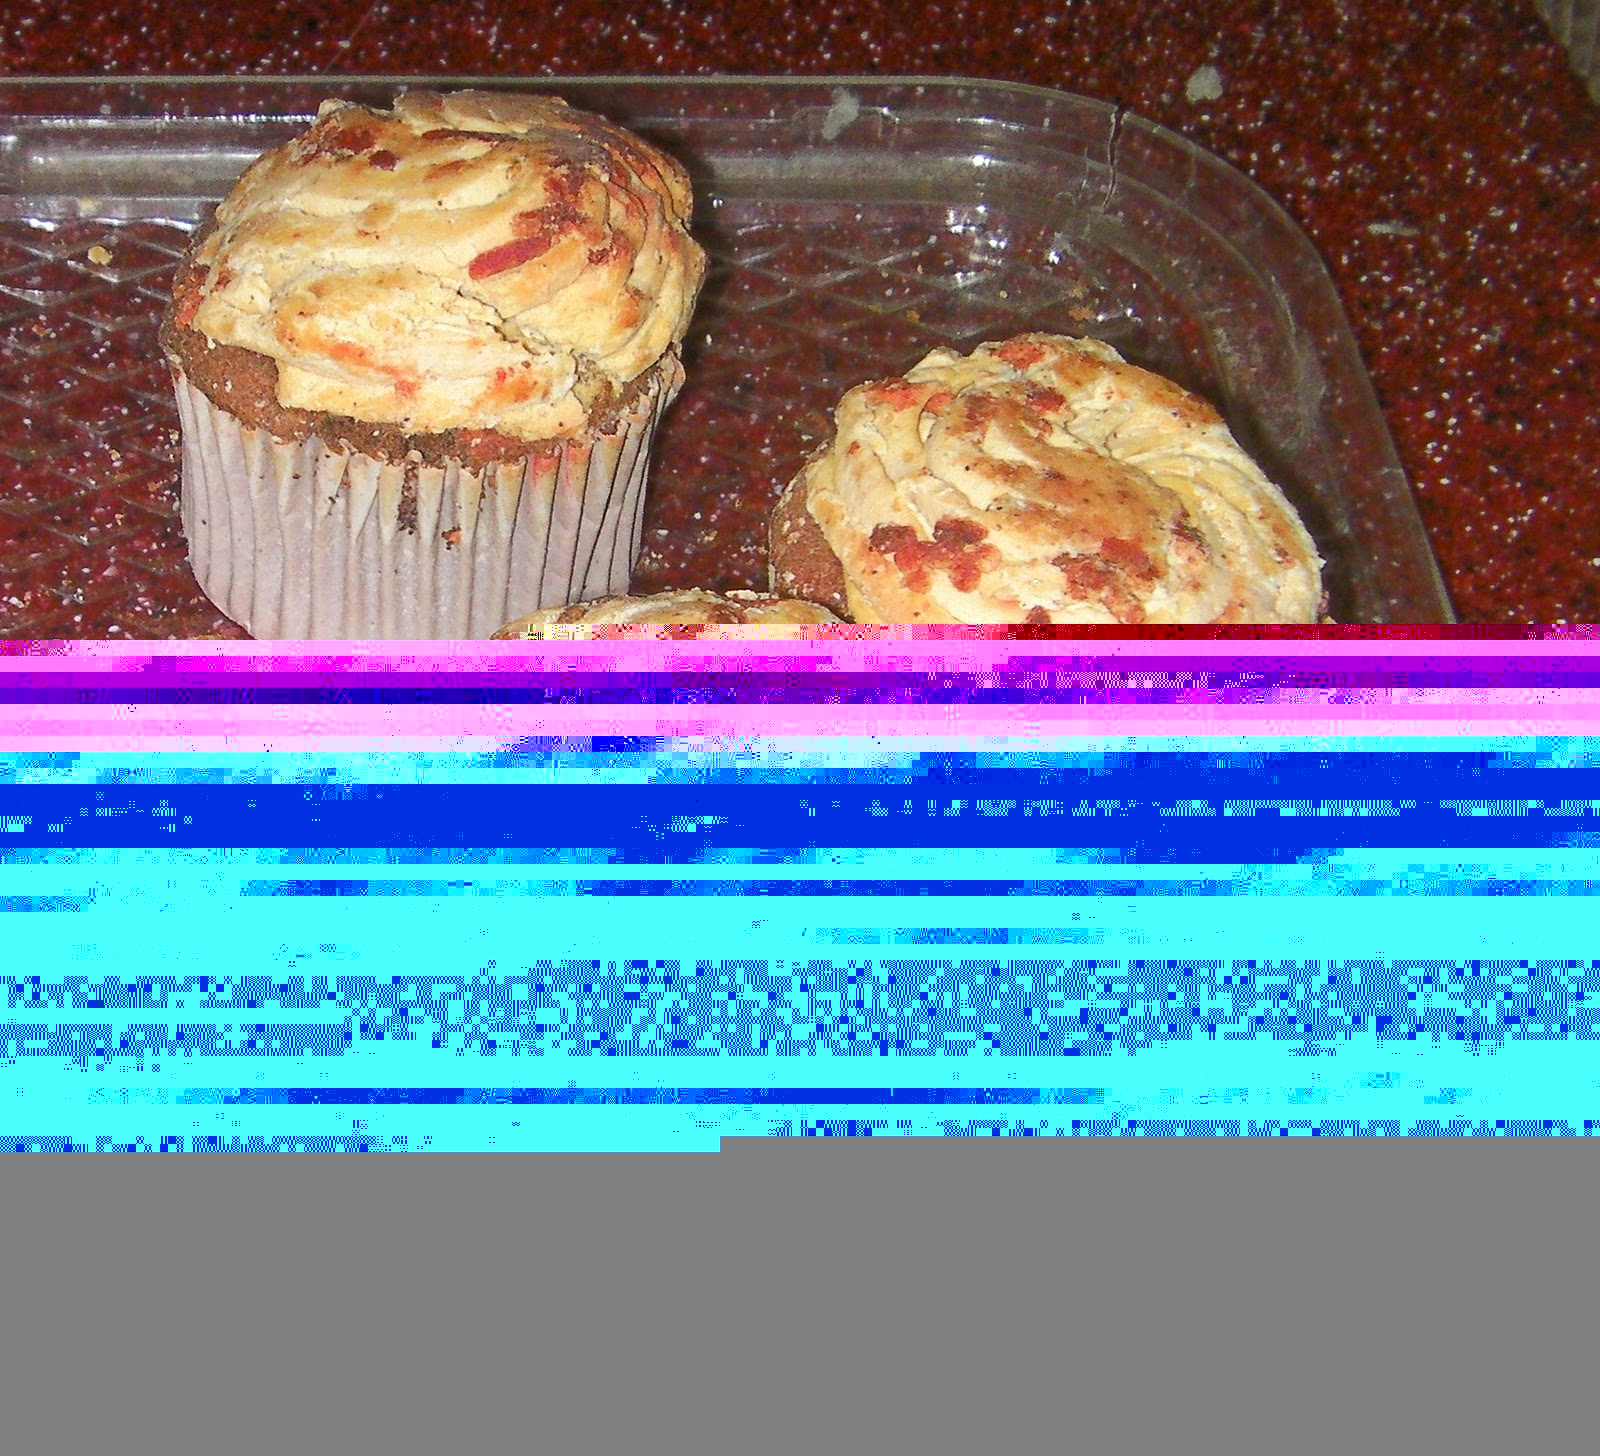 The cupcakes were purchased in